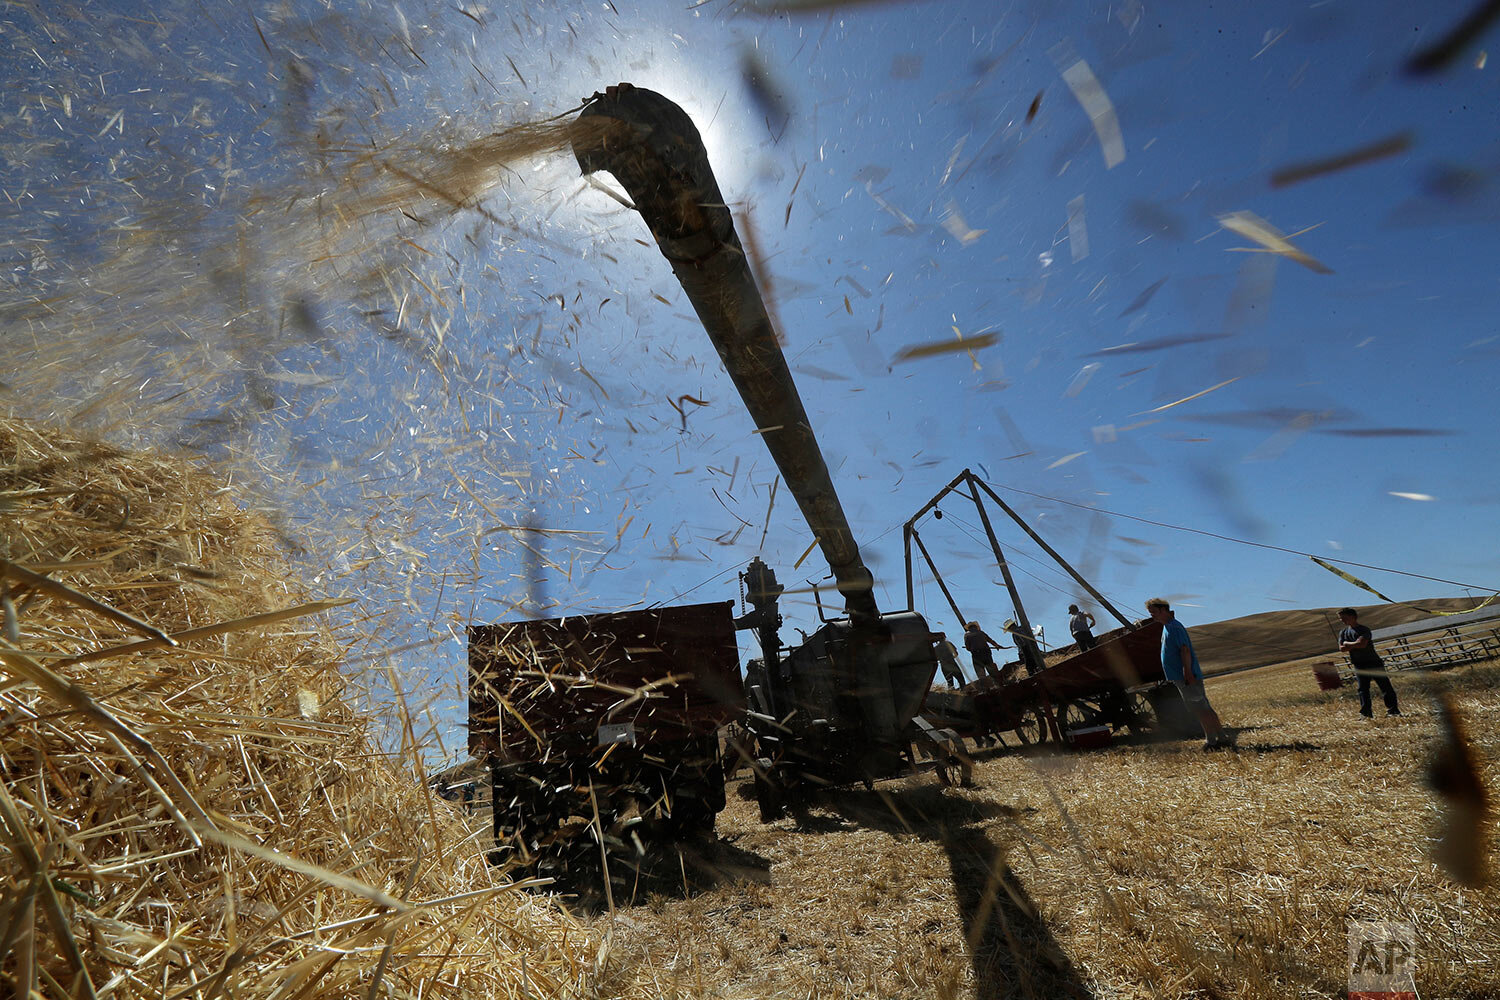 Barley chaff files from a stationary grain thresher near Colfax, Wash., Sept. 2, 2019. (AP Photo/Ted S. Warren)